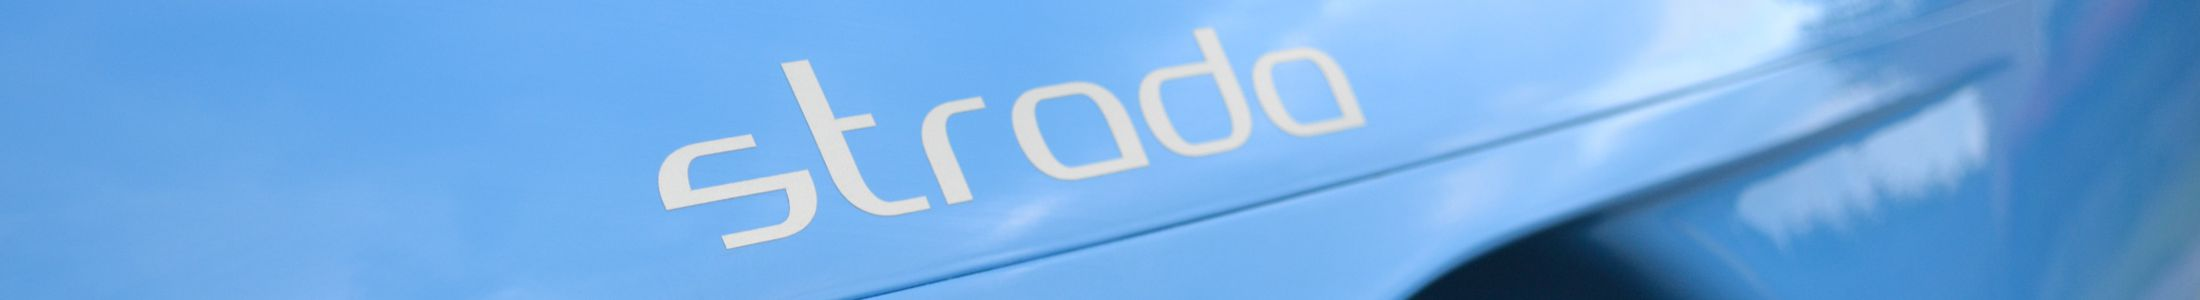 Header Strada Closeup 2200x500